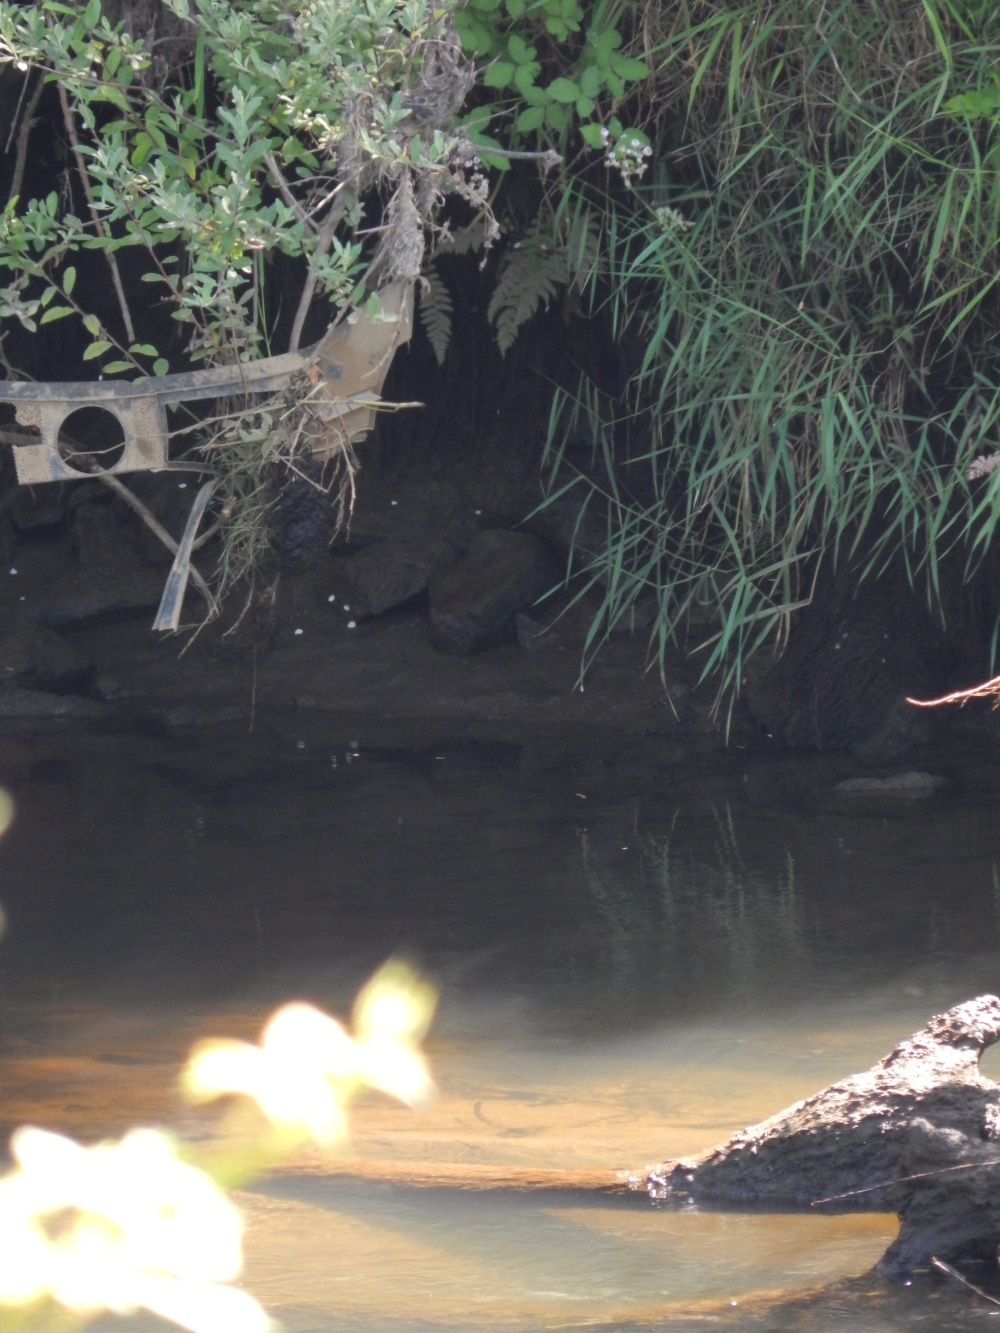 Car Part survives on Green River